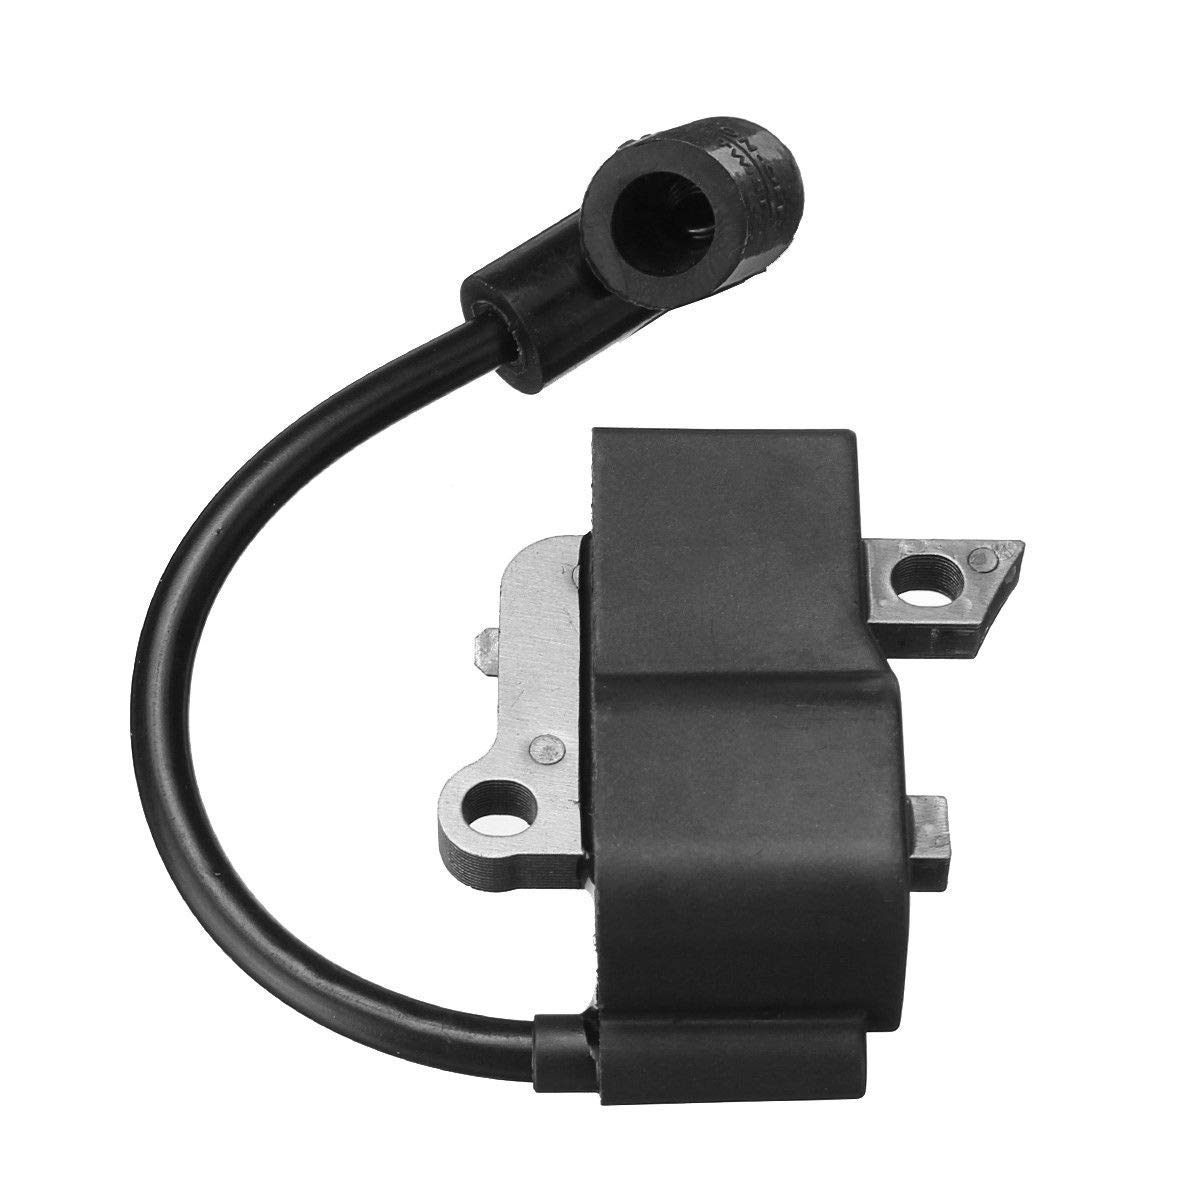 Morii 545202701 Ignition Module Coil Fits for Poulan Pro PP5020AV PP4818A Replaces Walbro Mb-74